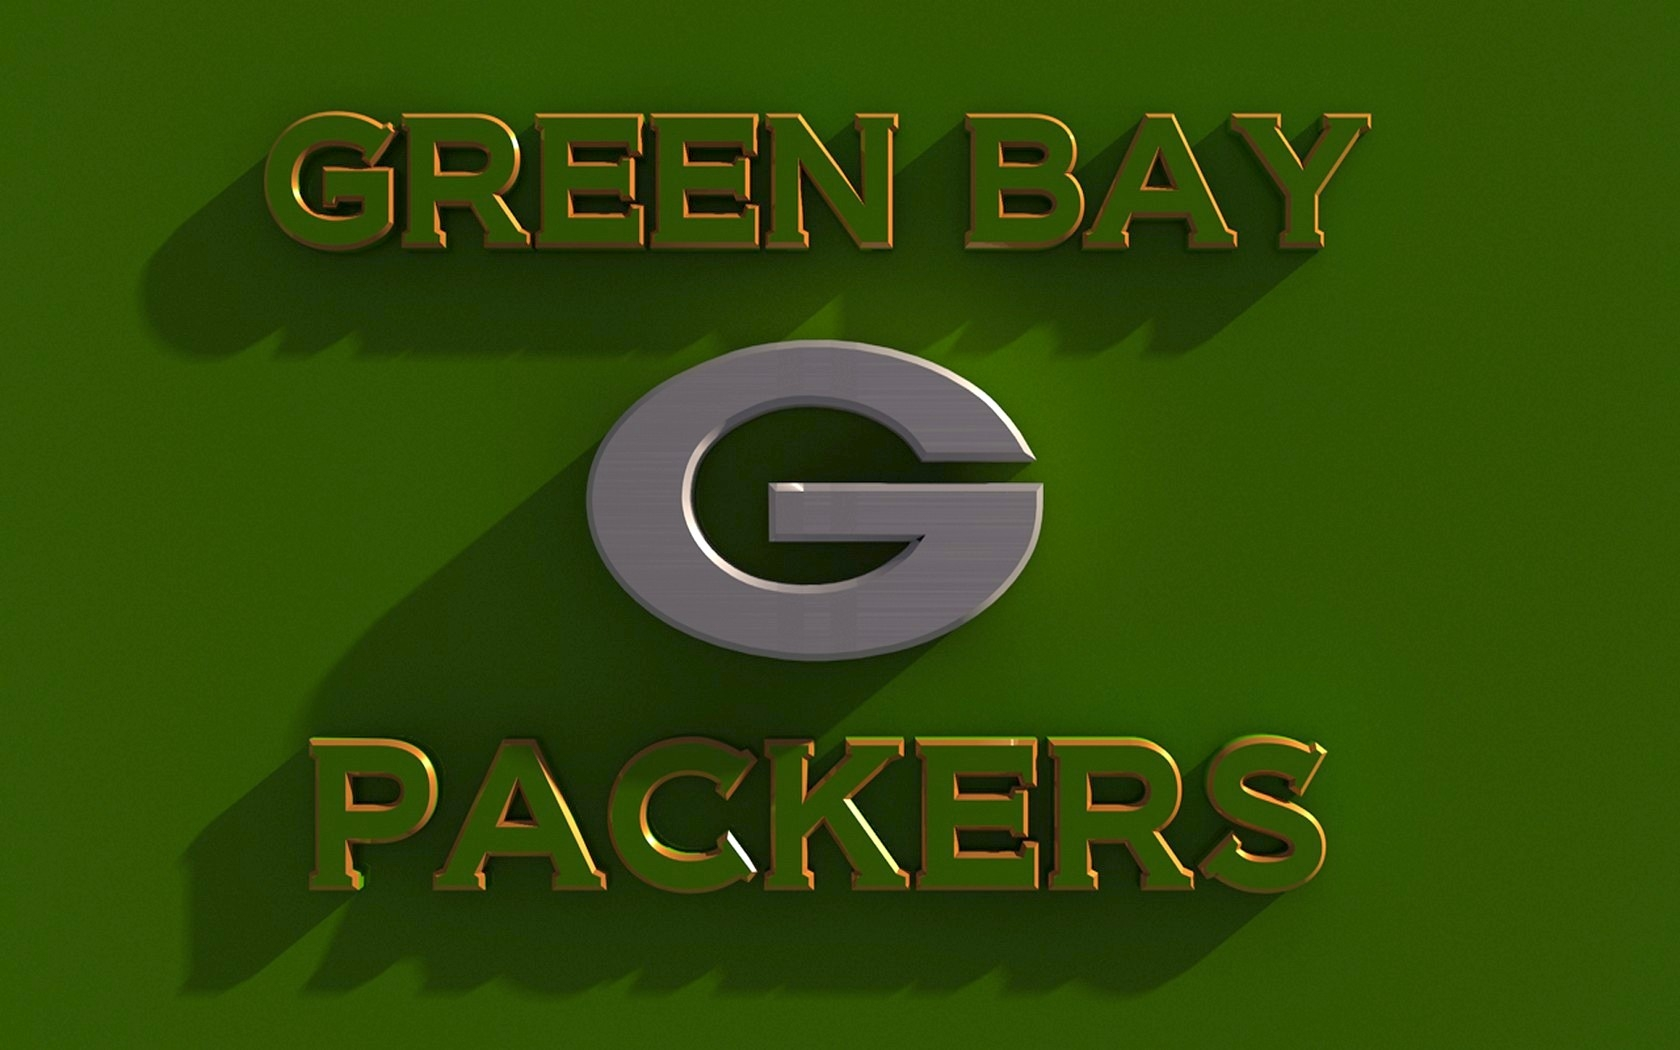 Free Green Bay Wallpaper 27398 1024x768 px